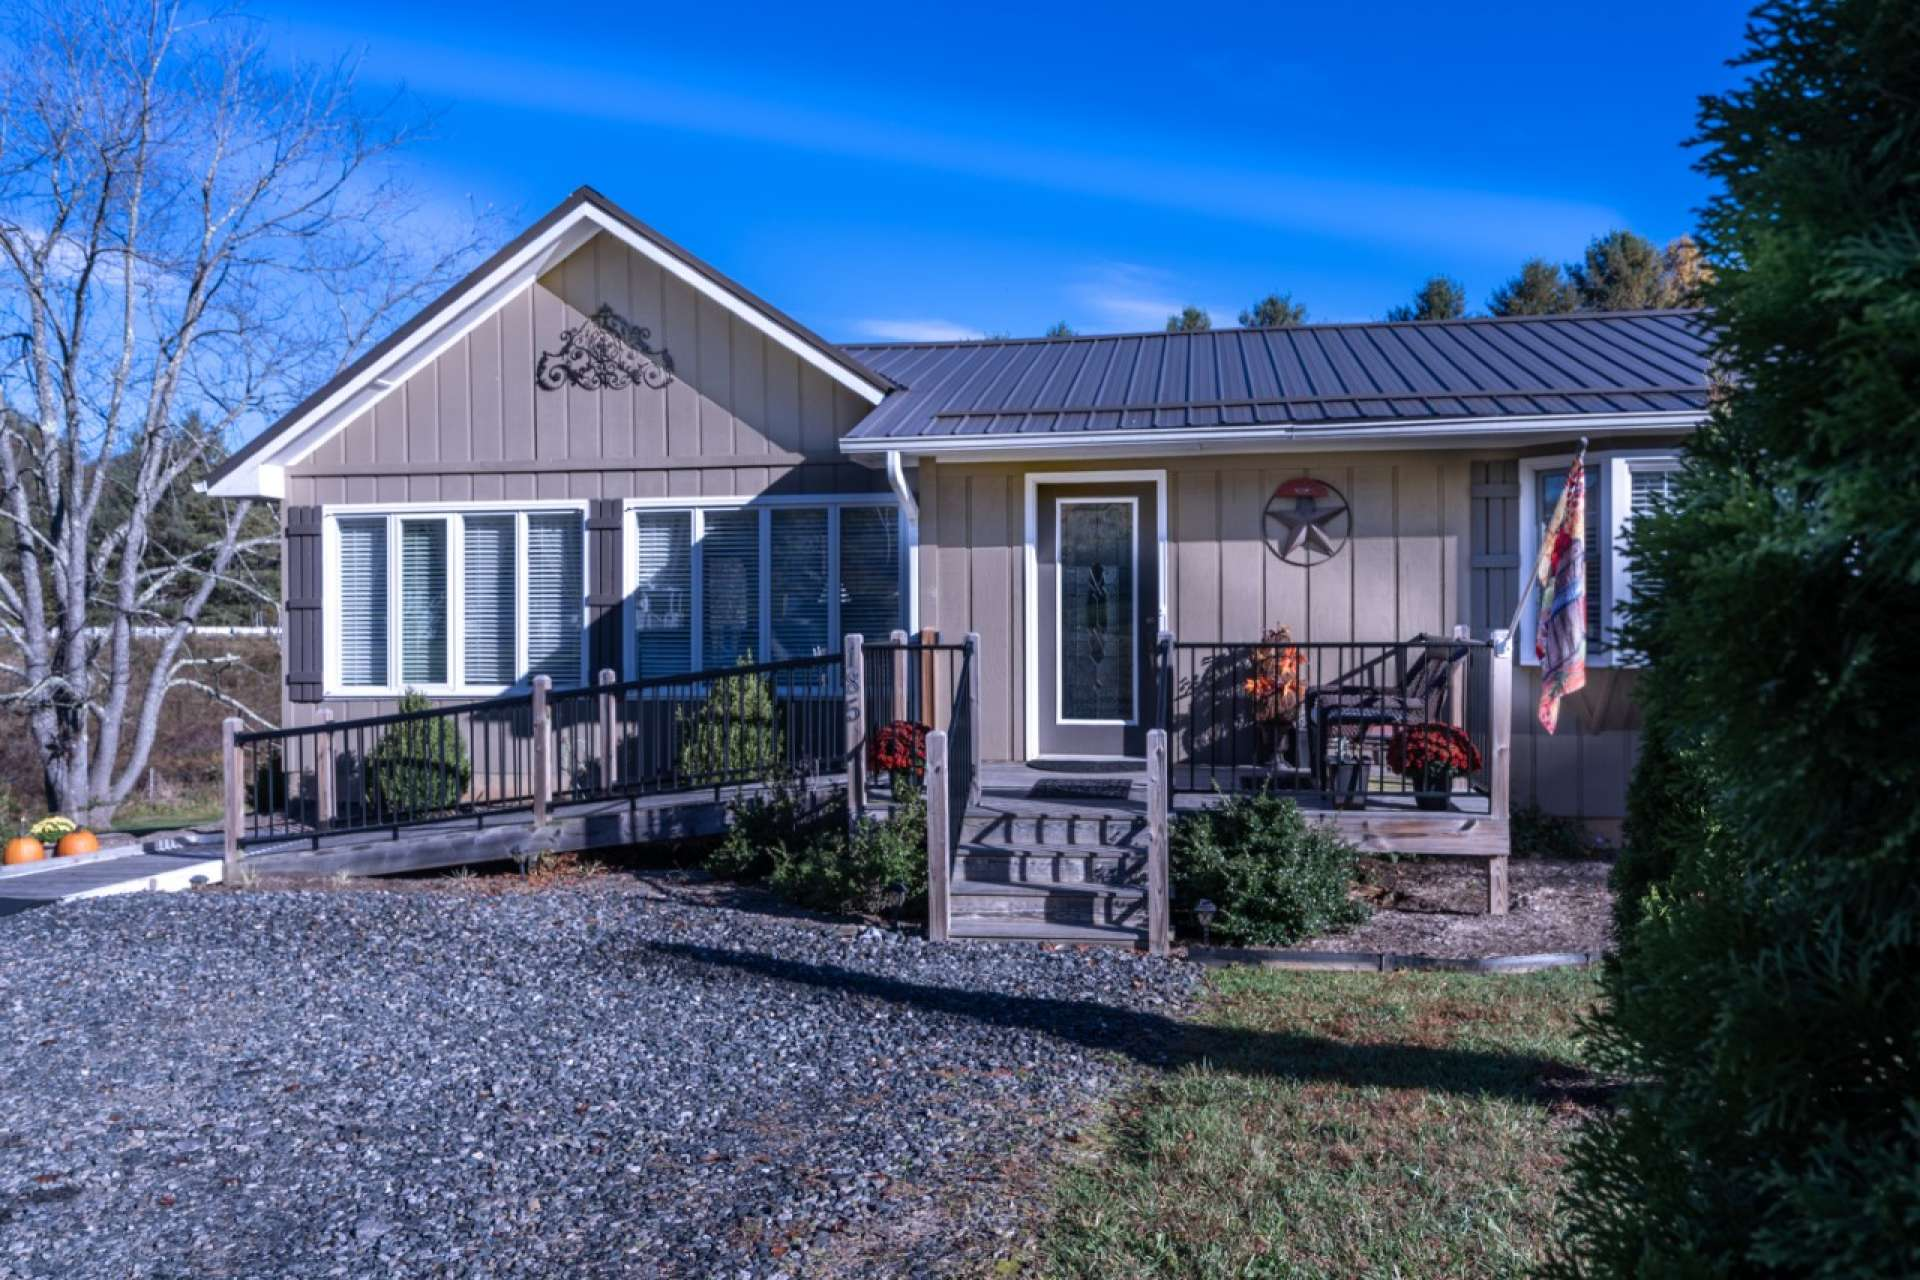 Handicapped accessible, this home offers modern craftsman style updates and is offered fully furnished.  The location is convenient to shopping in downtown West Jefferson and a short drive to Boone. Also enjoy recreational amenities of Mount Jefferson State Park and the New River.